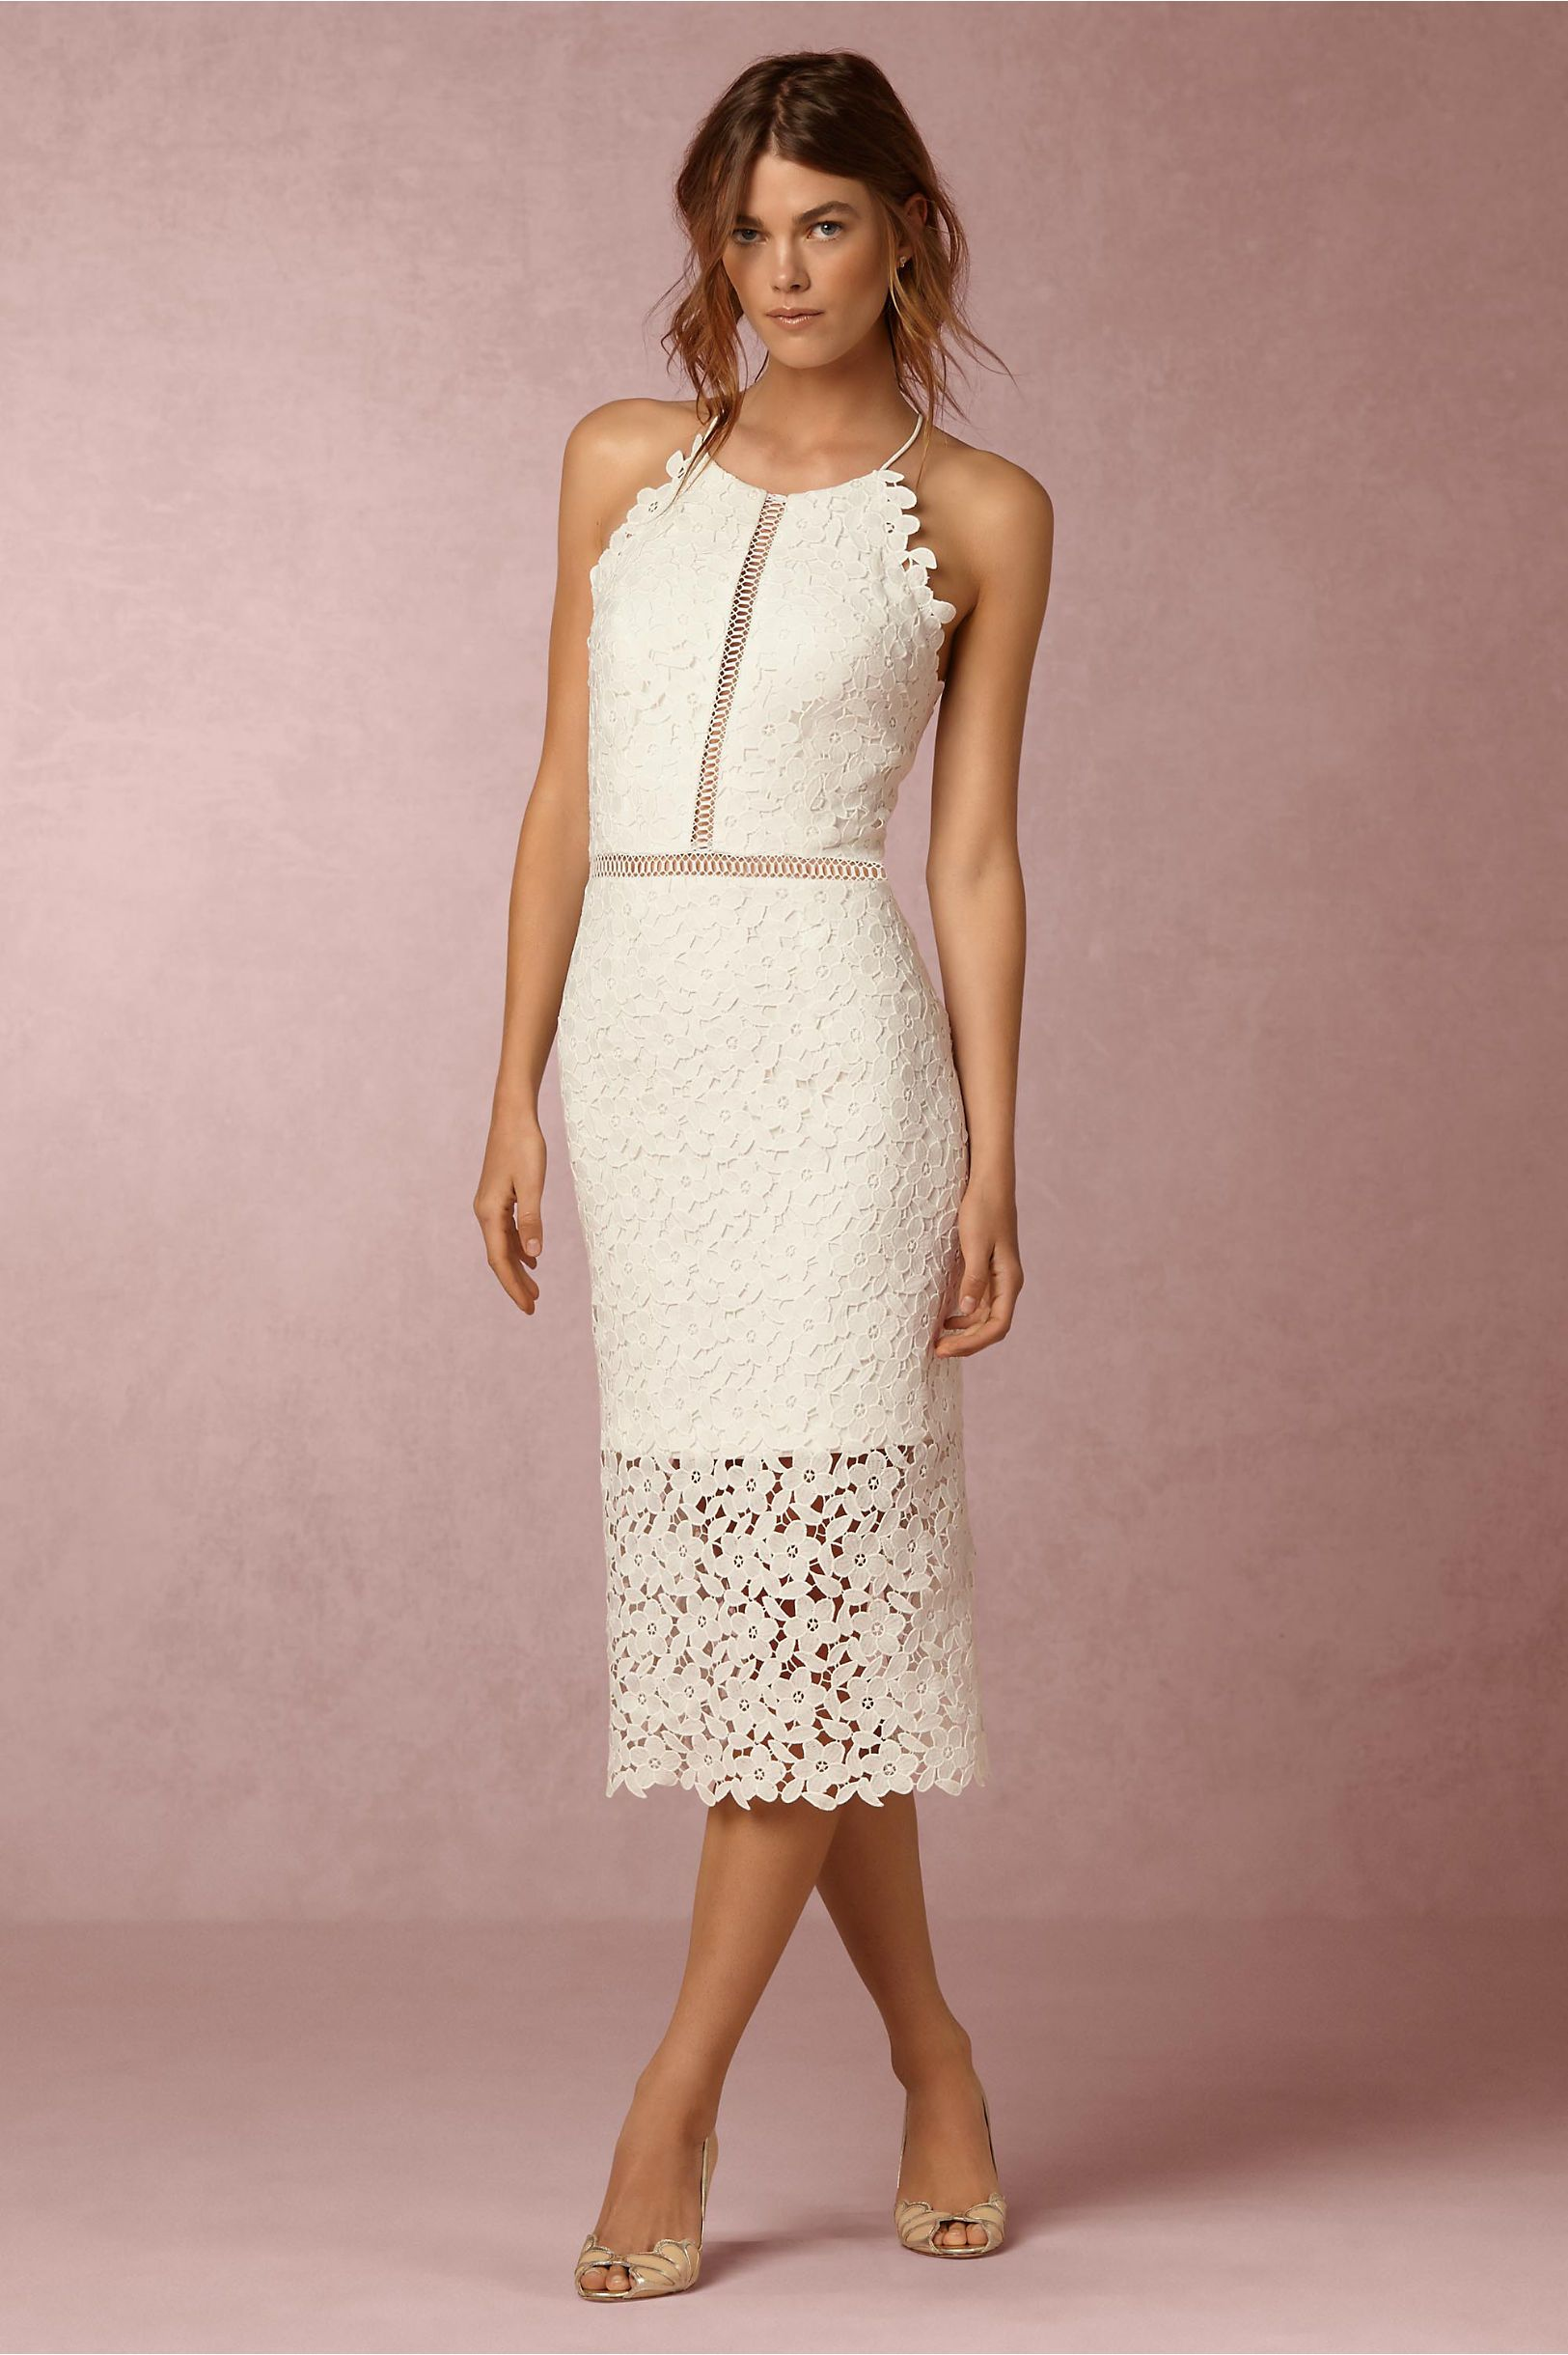 BHLDN Tulip Dress in Beach & Honeymoon Dresses & Separates at BHLDN ...